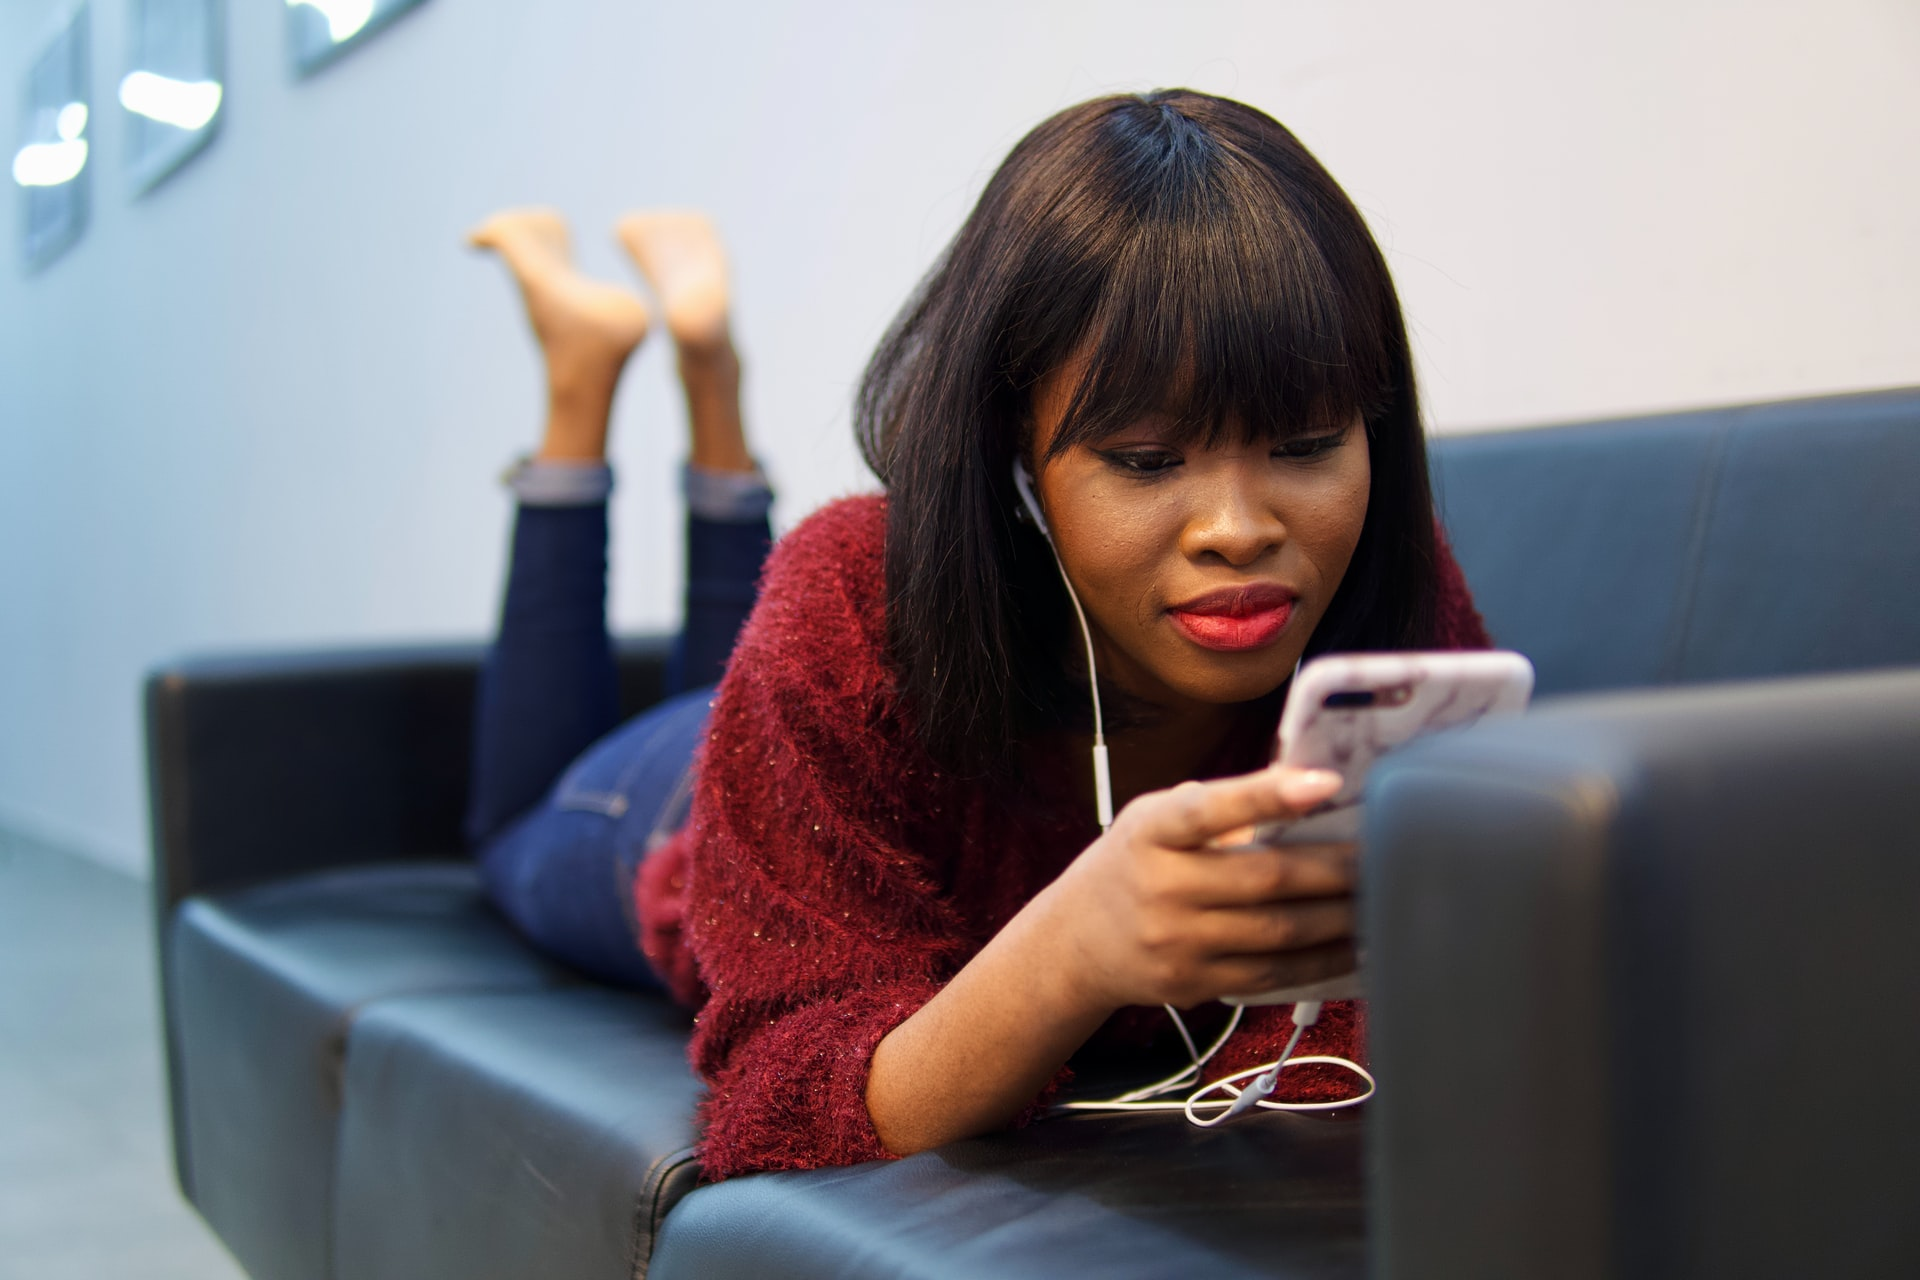 Woman lounging on a couch with her phone and earbuds.